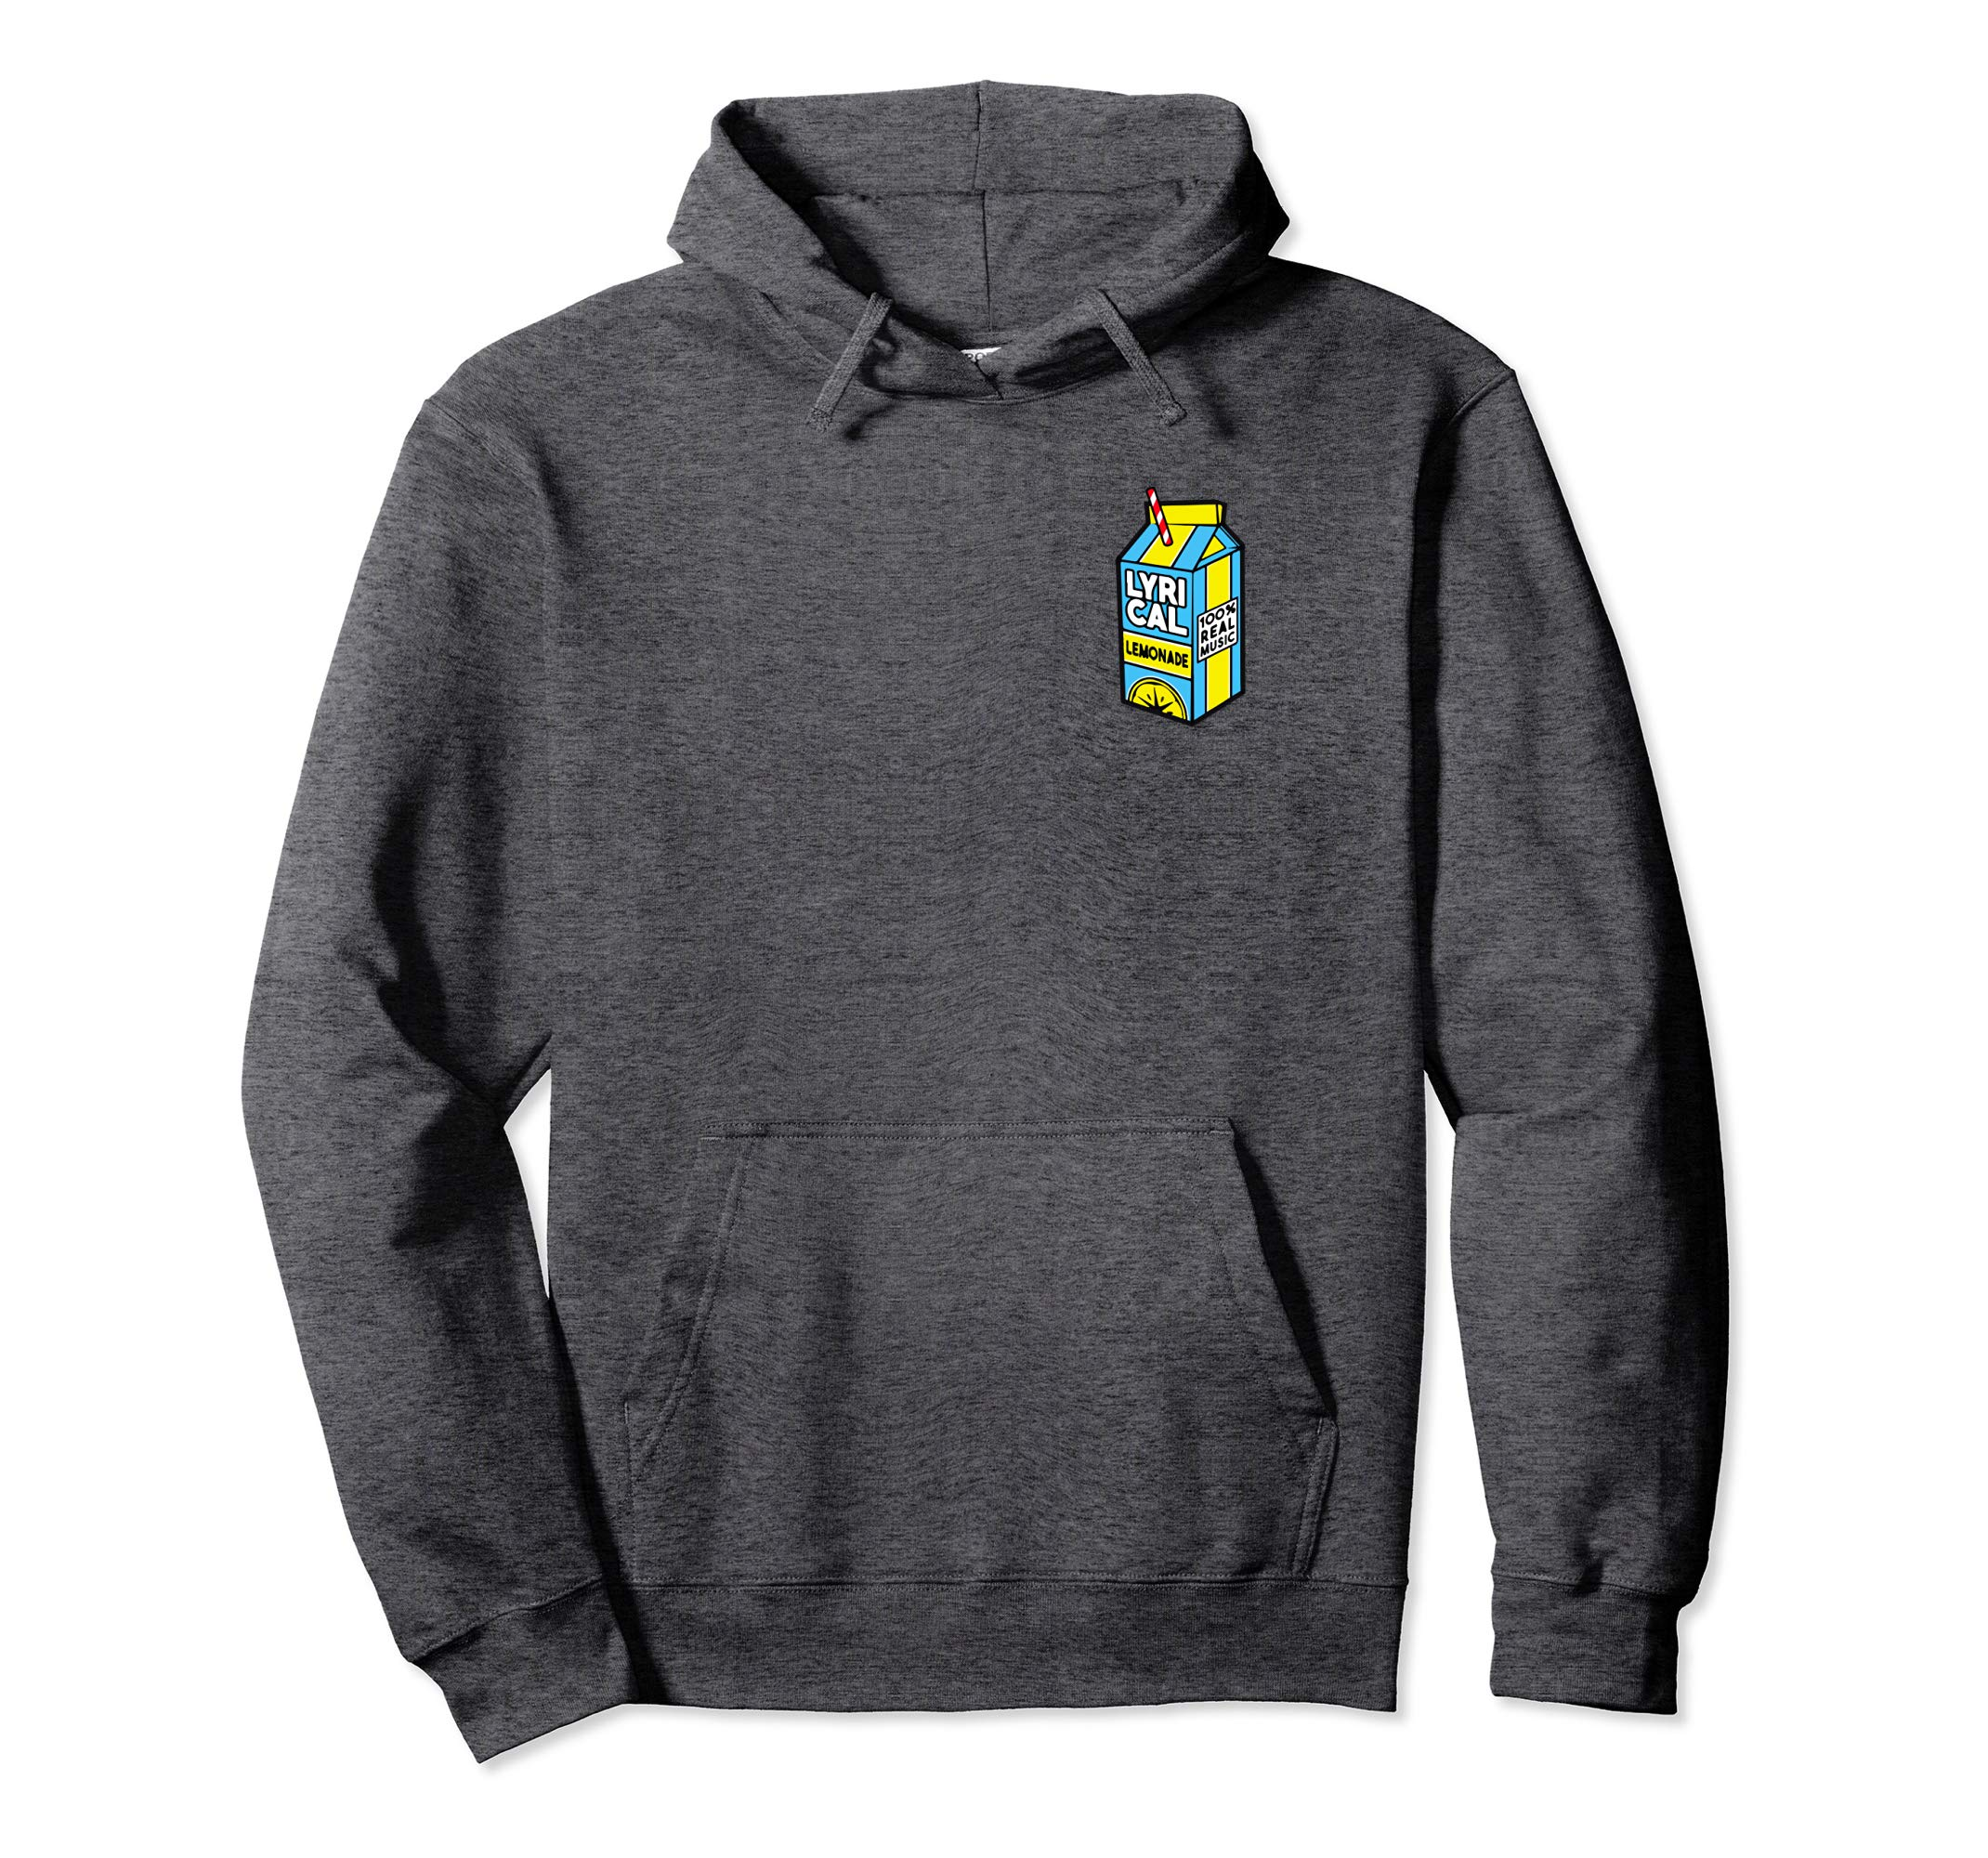 Lyrical Lemonade Hoodie-mt